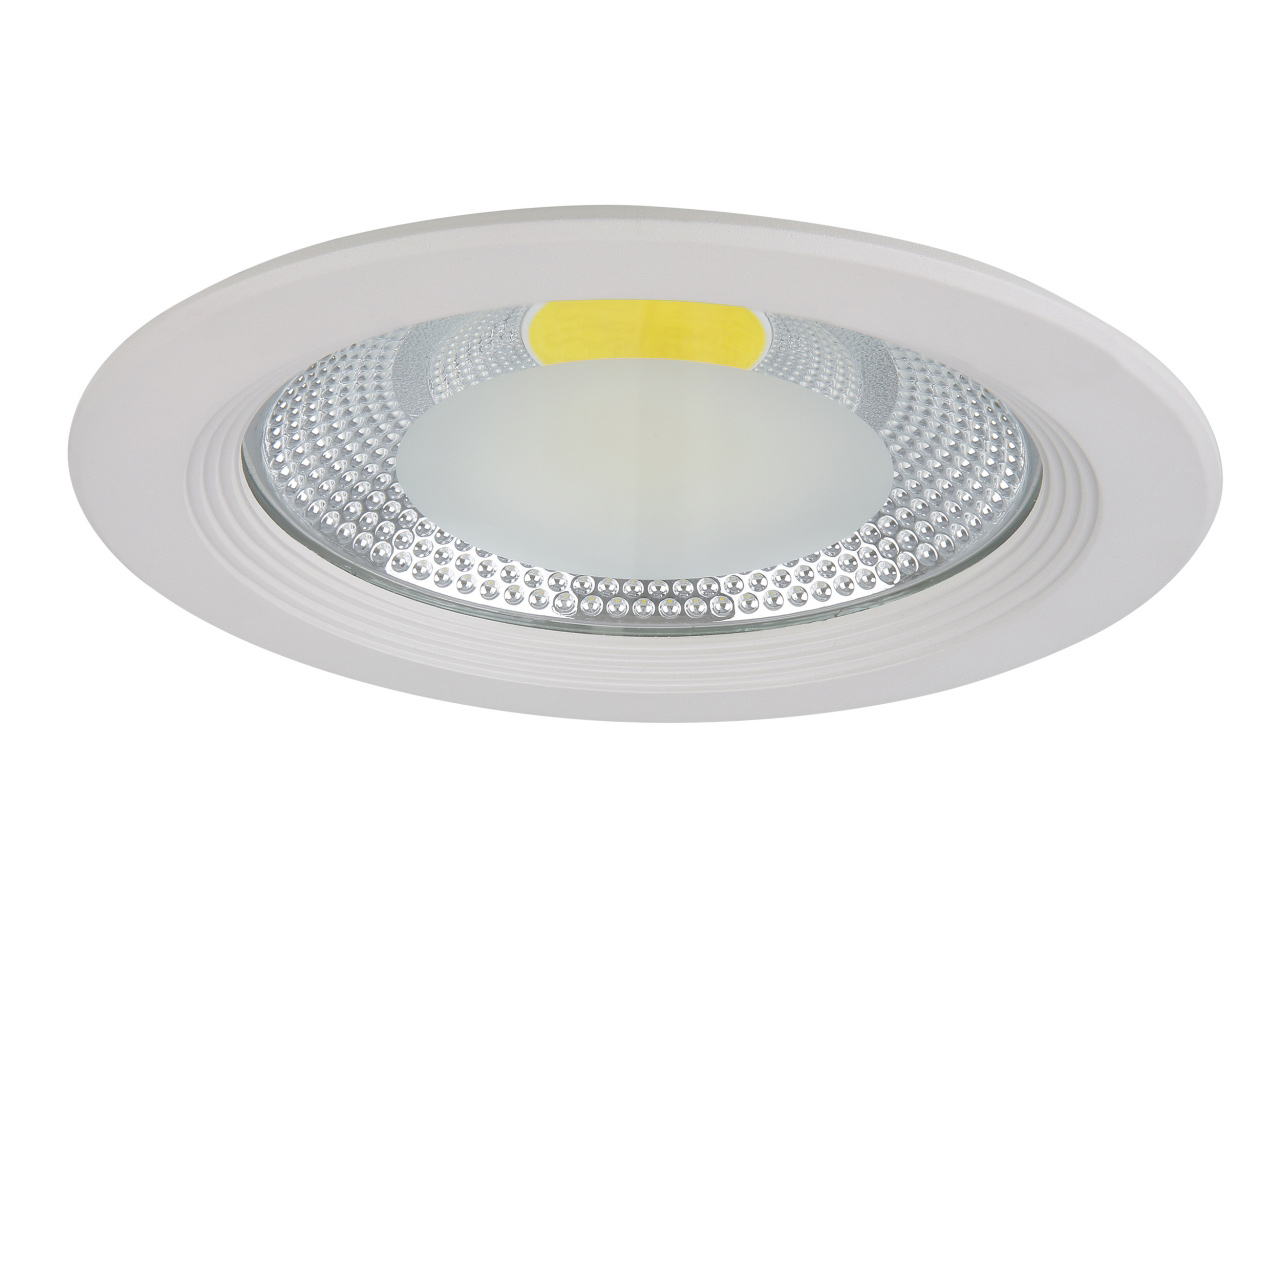 Светильник Forto LED 30W 2850LM 55G 4000K Lightstar 223304